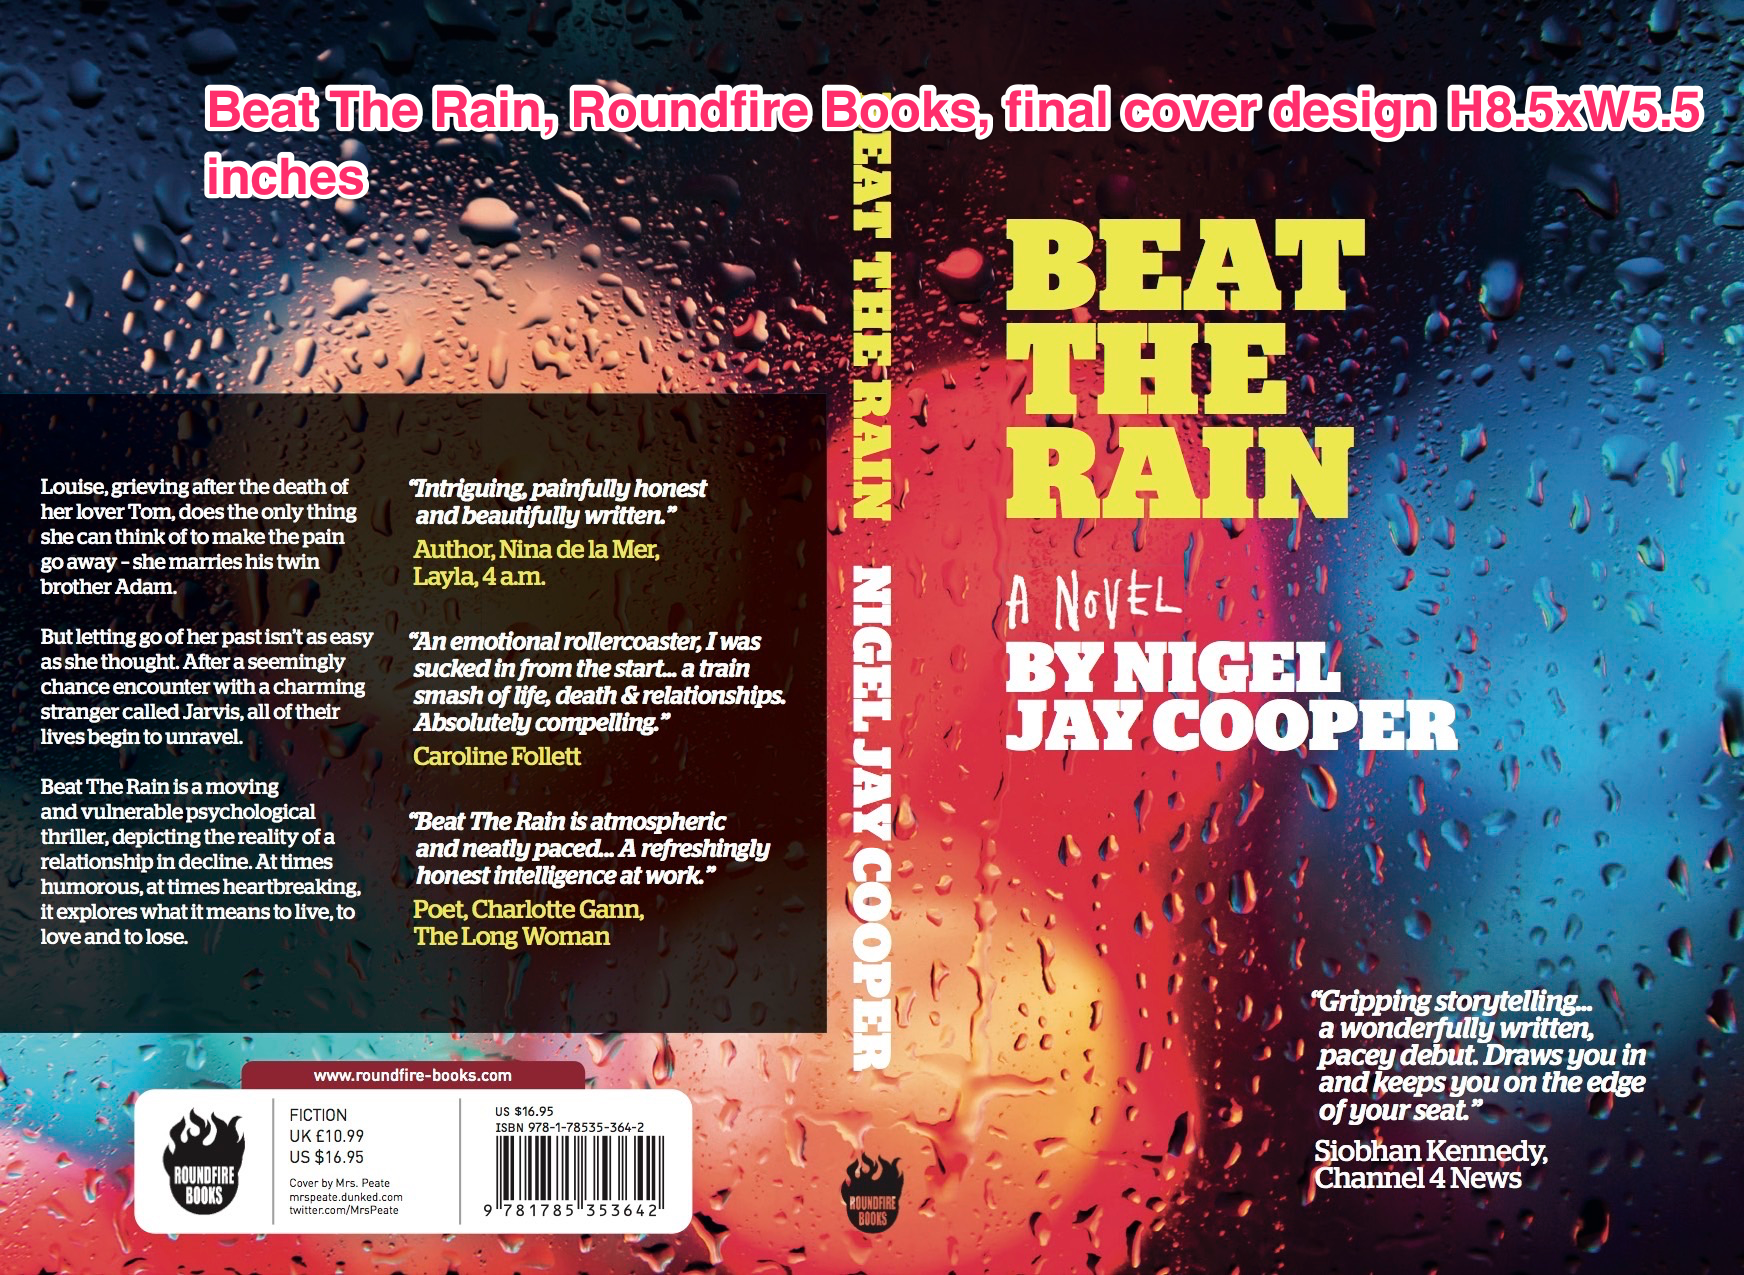 Beat The Rain, Roundfire Books, final cover design